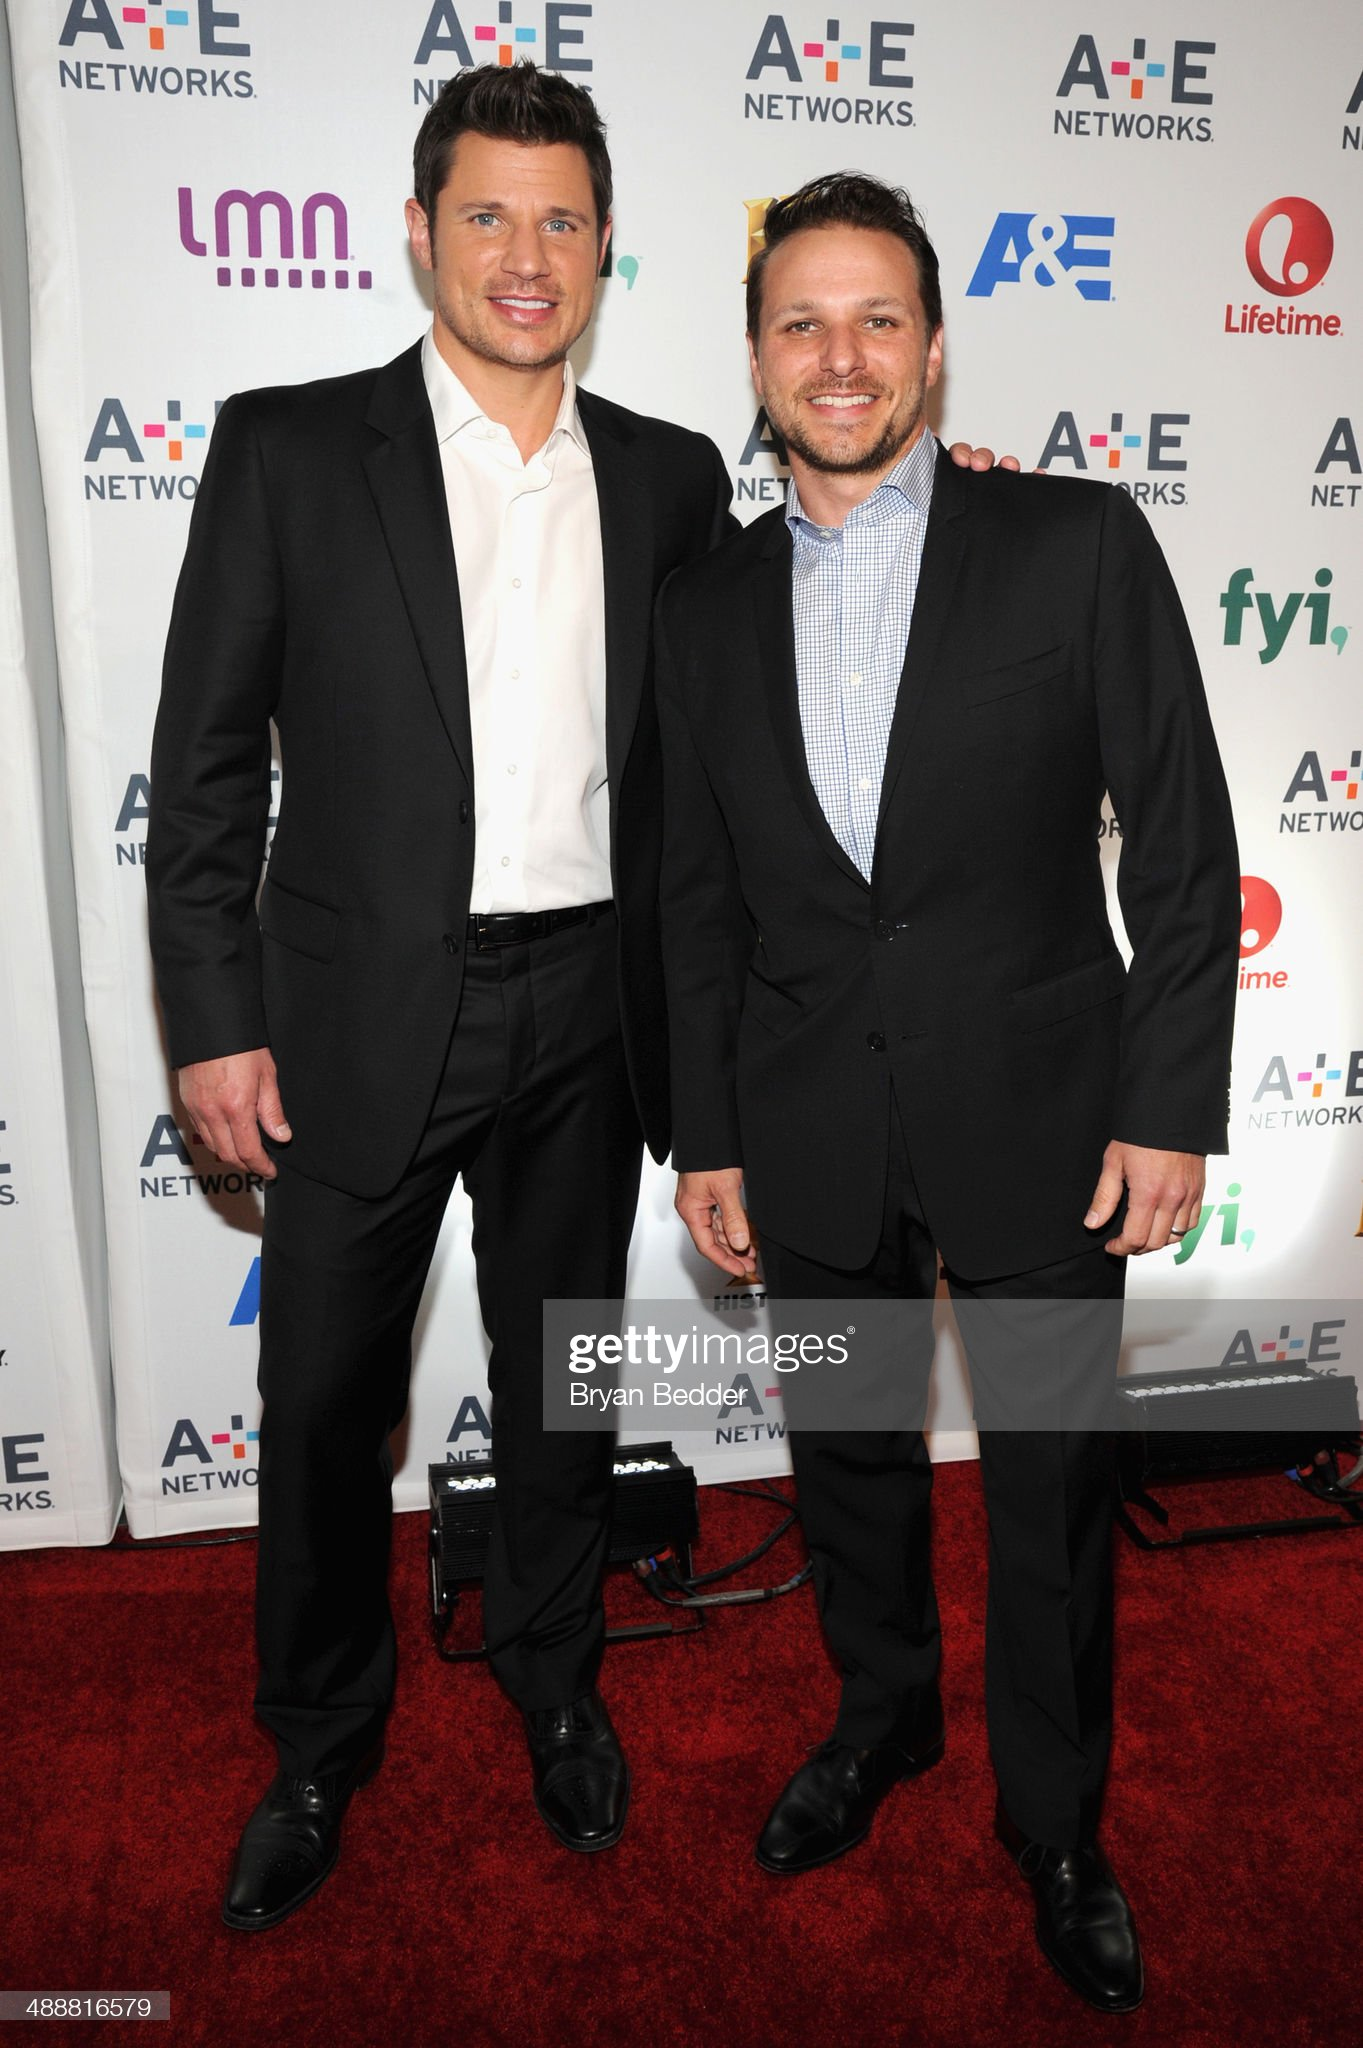 ¿Cuánto mide Nick Lachey? - Real height Nick-lachey-and-drew-lachey-attend-the-2014-ae-networks-upfront-on-8-picture-id488816579?s=2048x2048